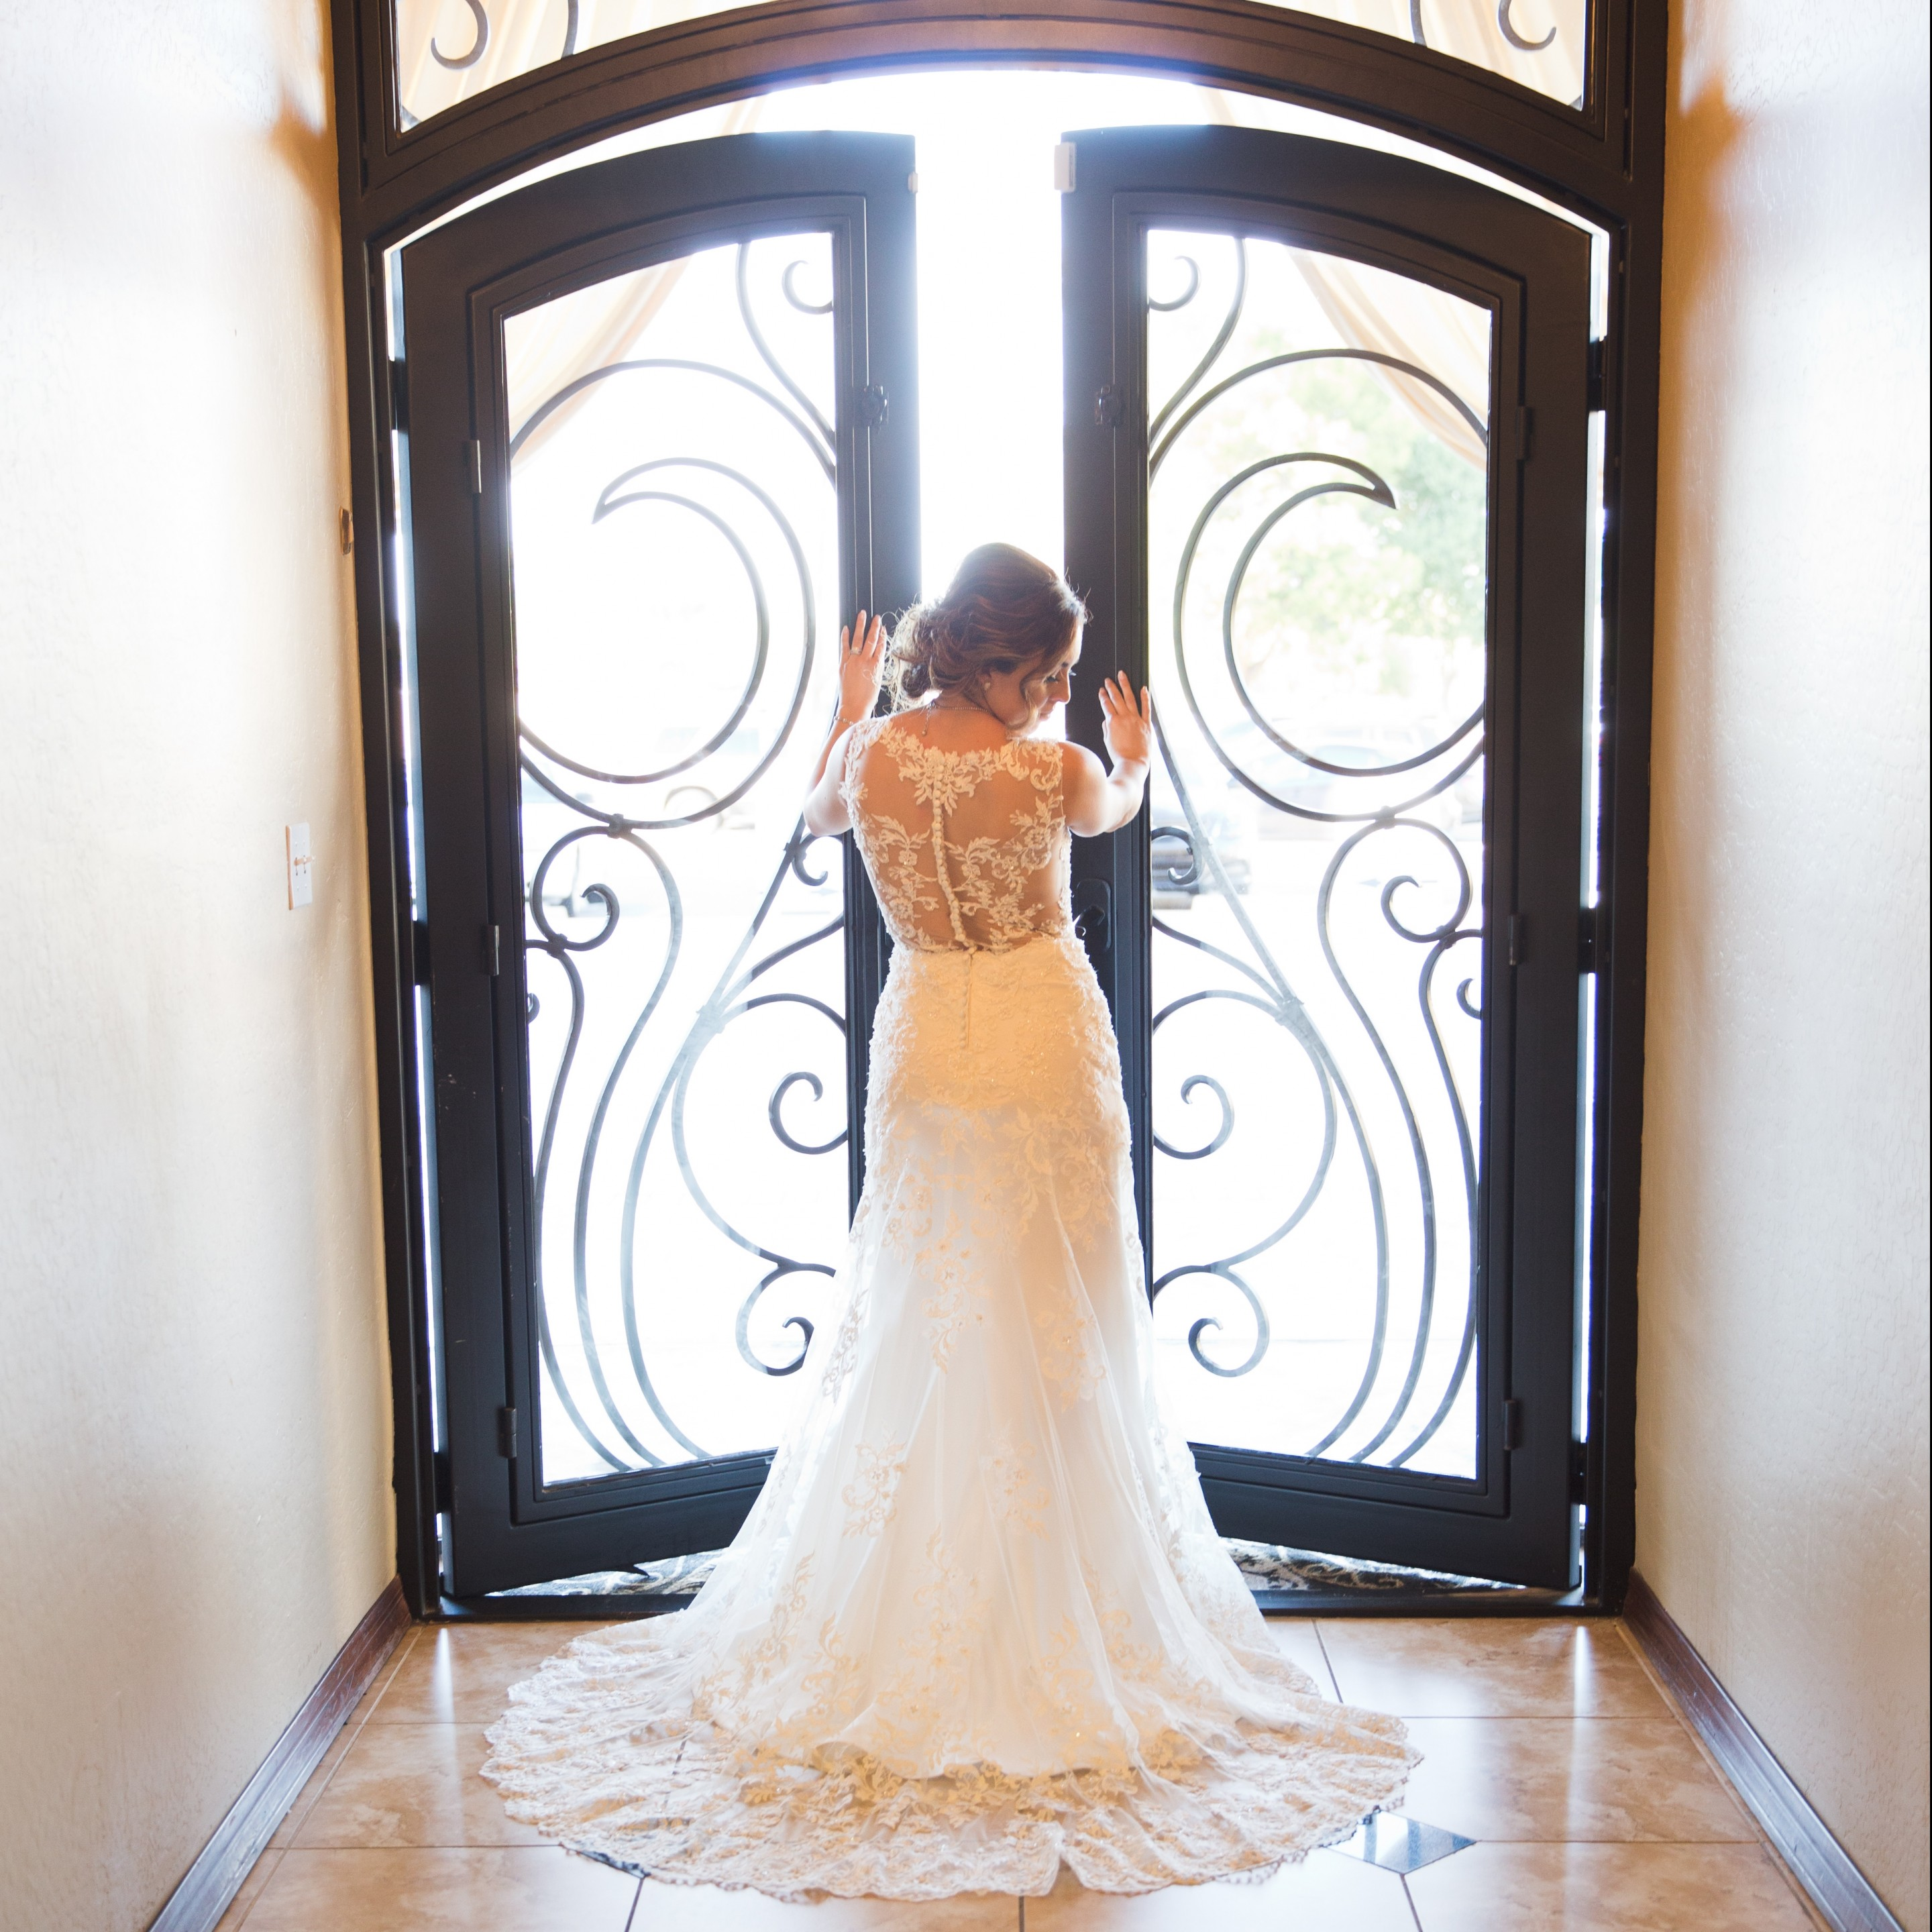 Villa Tuscana Reception Hall event showing back of wedding dress inside reception hall